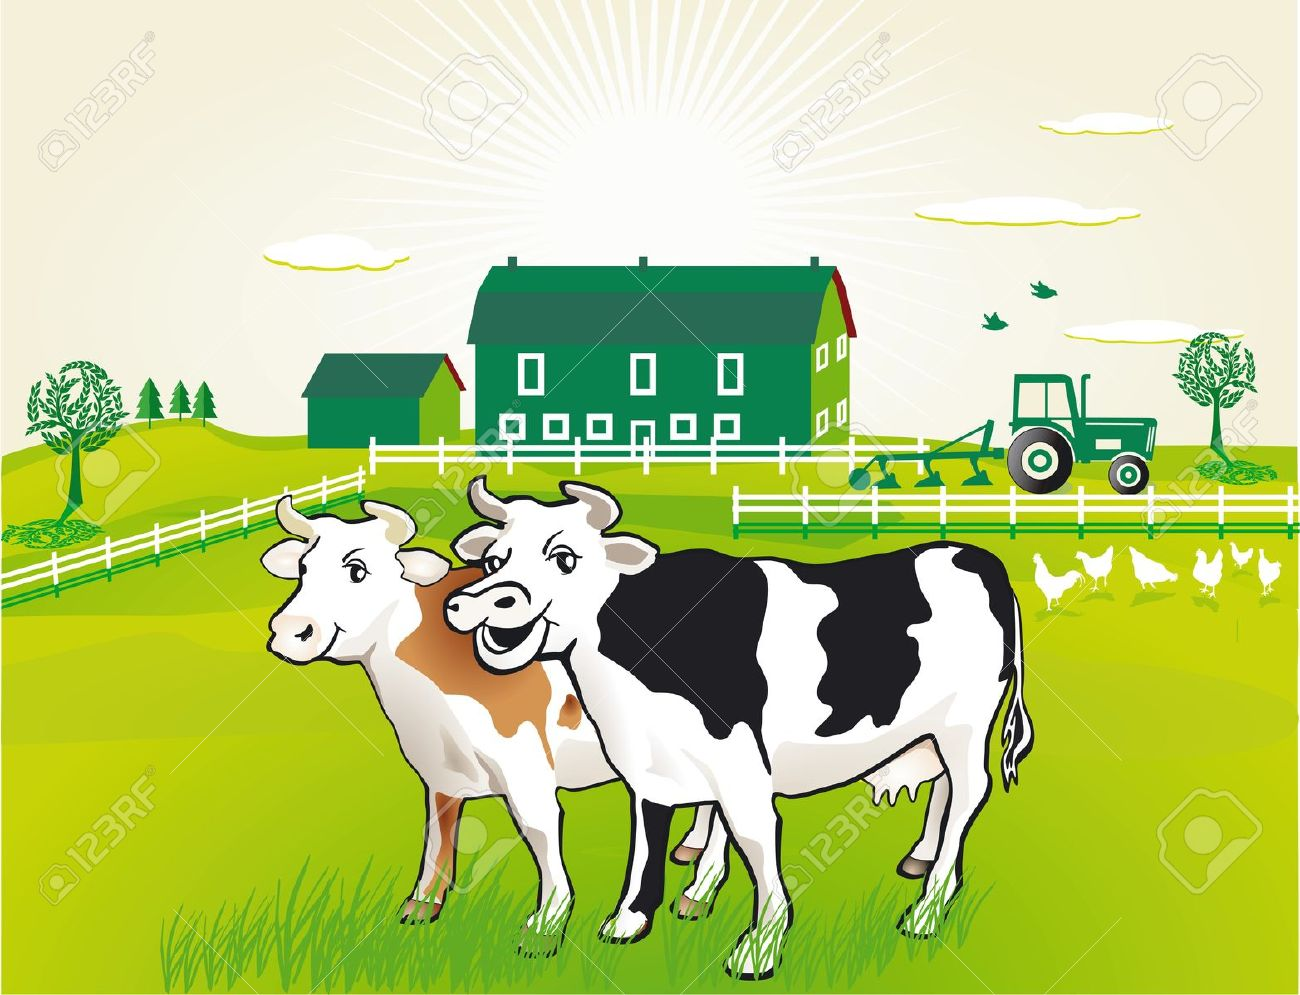 Pasture clipart #5, Download drawings